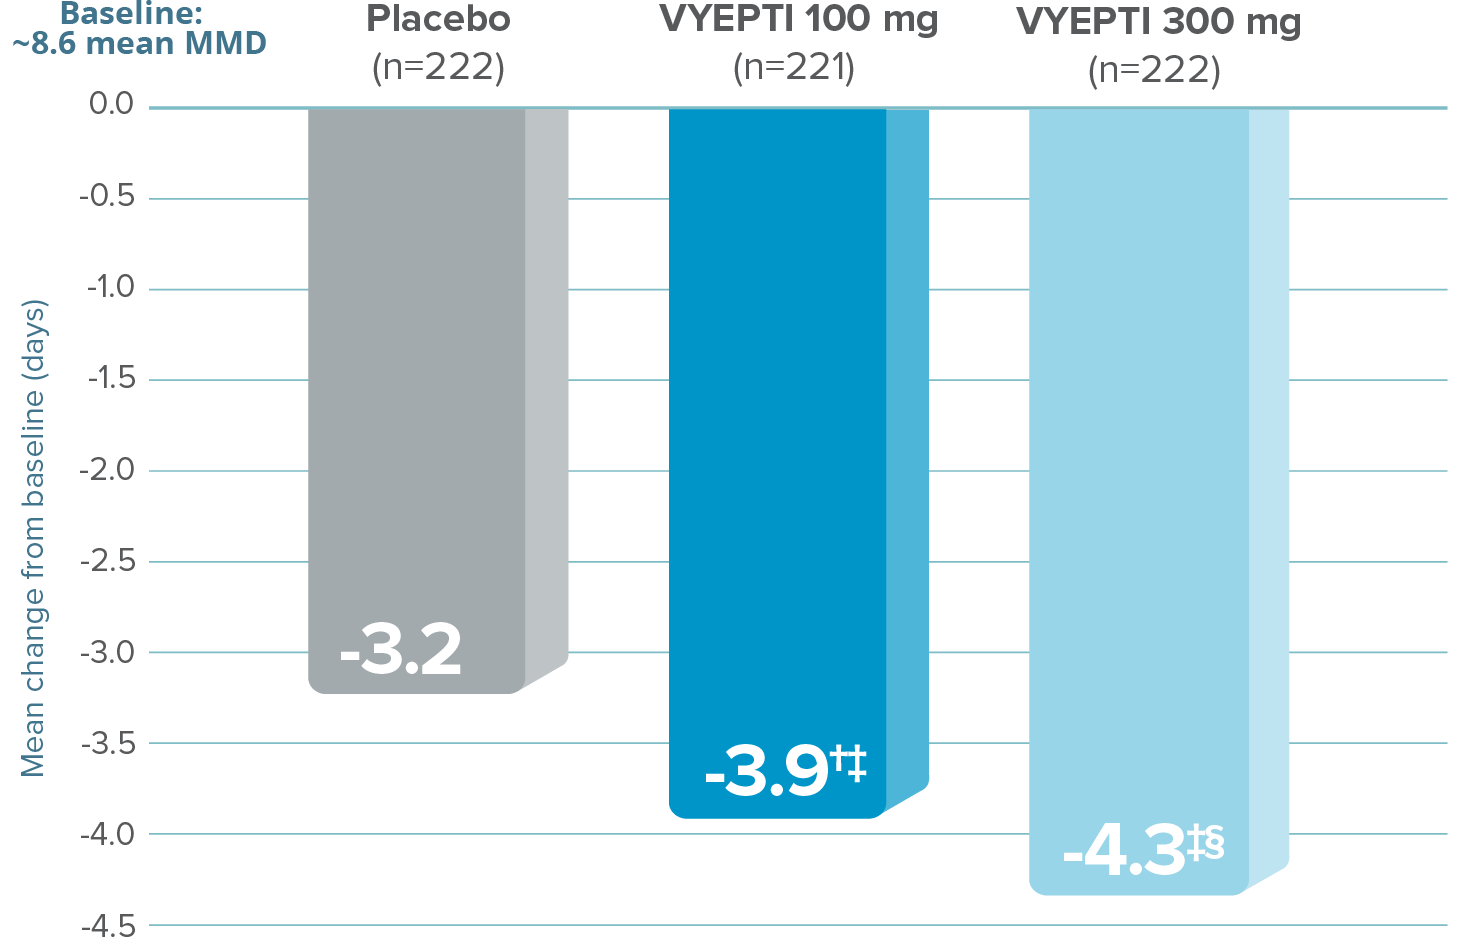 Graph showing that, after the first dose, VYEPTI 100 mg and 300 mg dosages reduced the number of mean MMD by 3.9 and 4.3 (Months 1-3), respectively, vs 3.2 with placebo (baseline ~8.6 mean MMD; p=0.018 vs placebo for VYEPTI 100 mg; p<0.001 vs placebo for VYEPTI 300 mg).